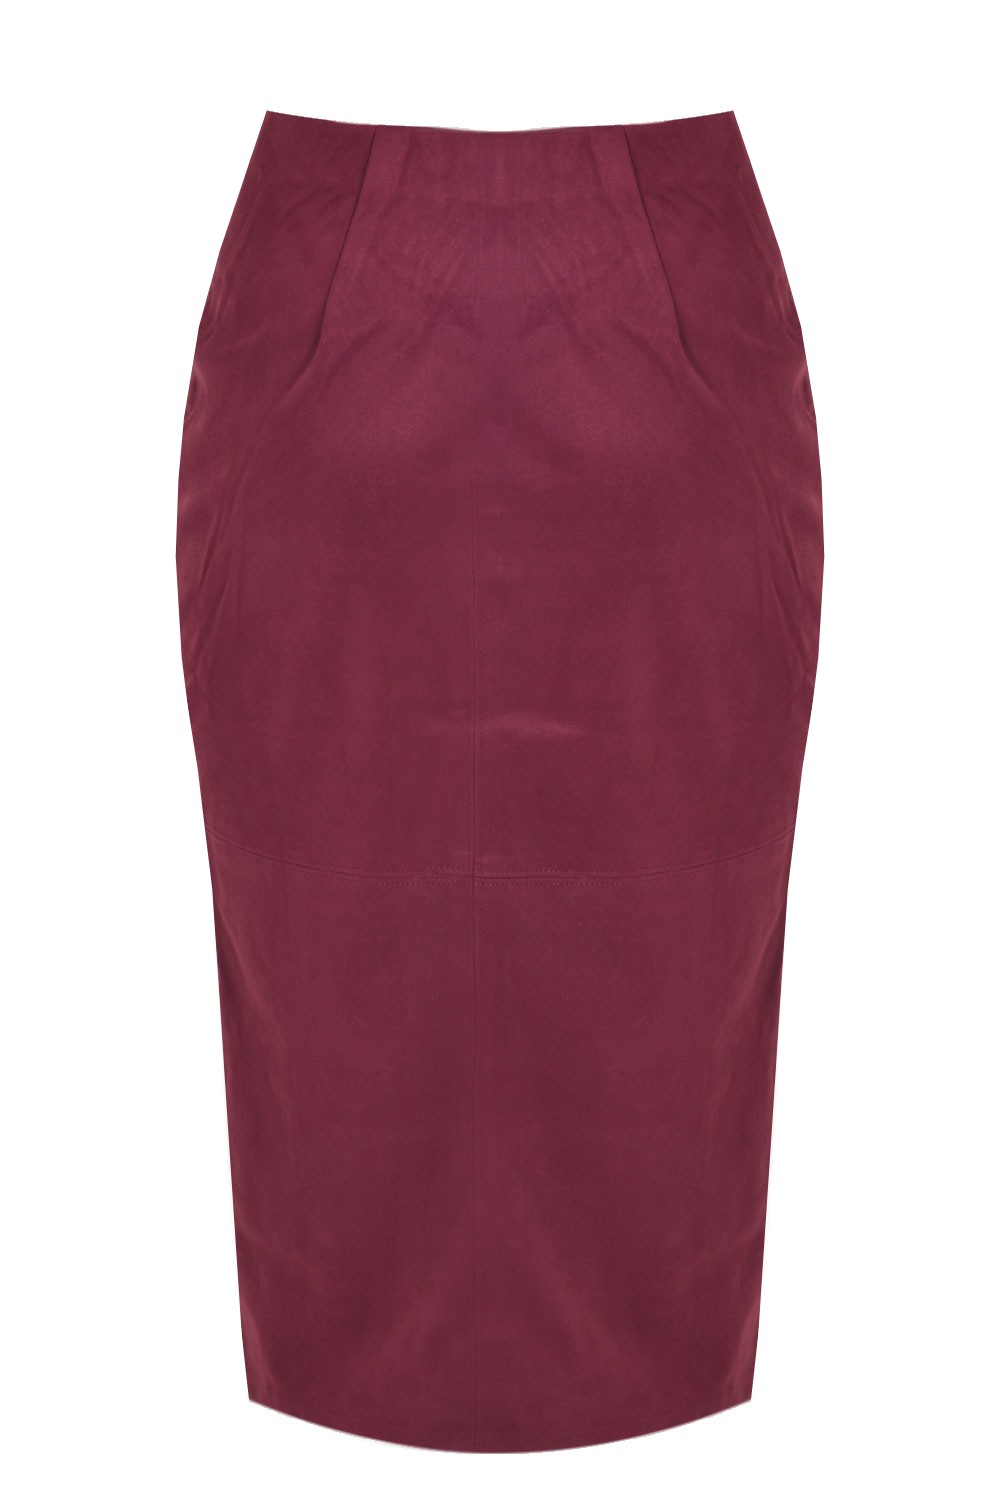 glamorous suedette pencil skirt in burgundy iclothing